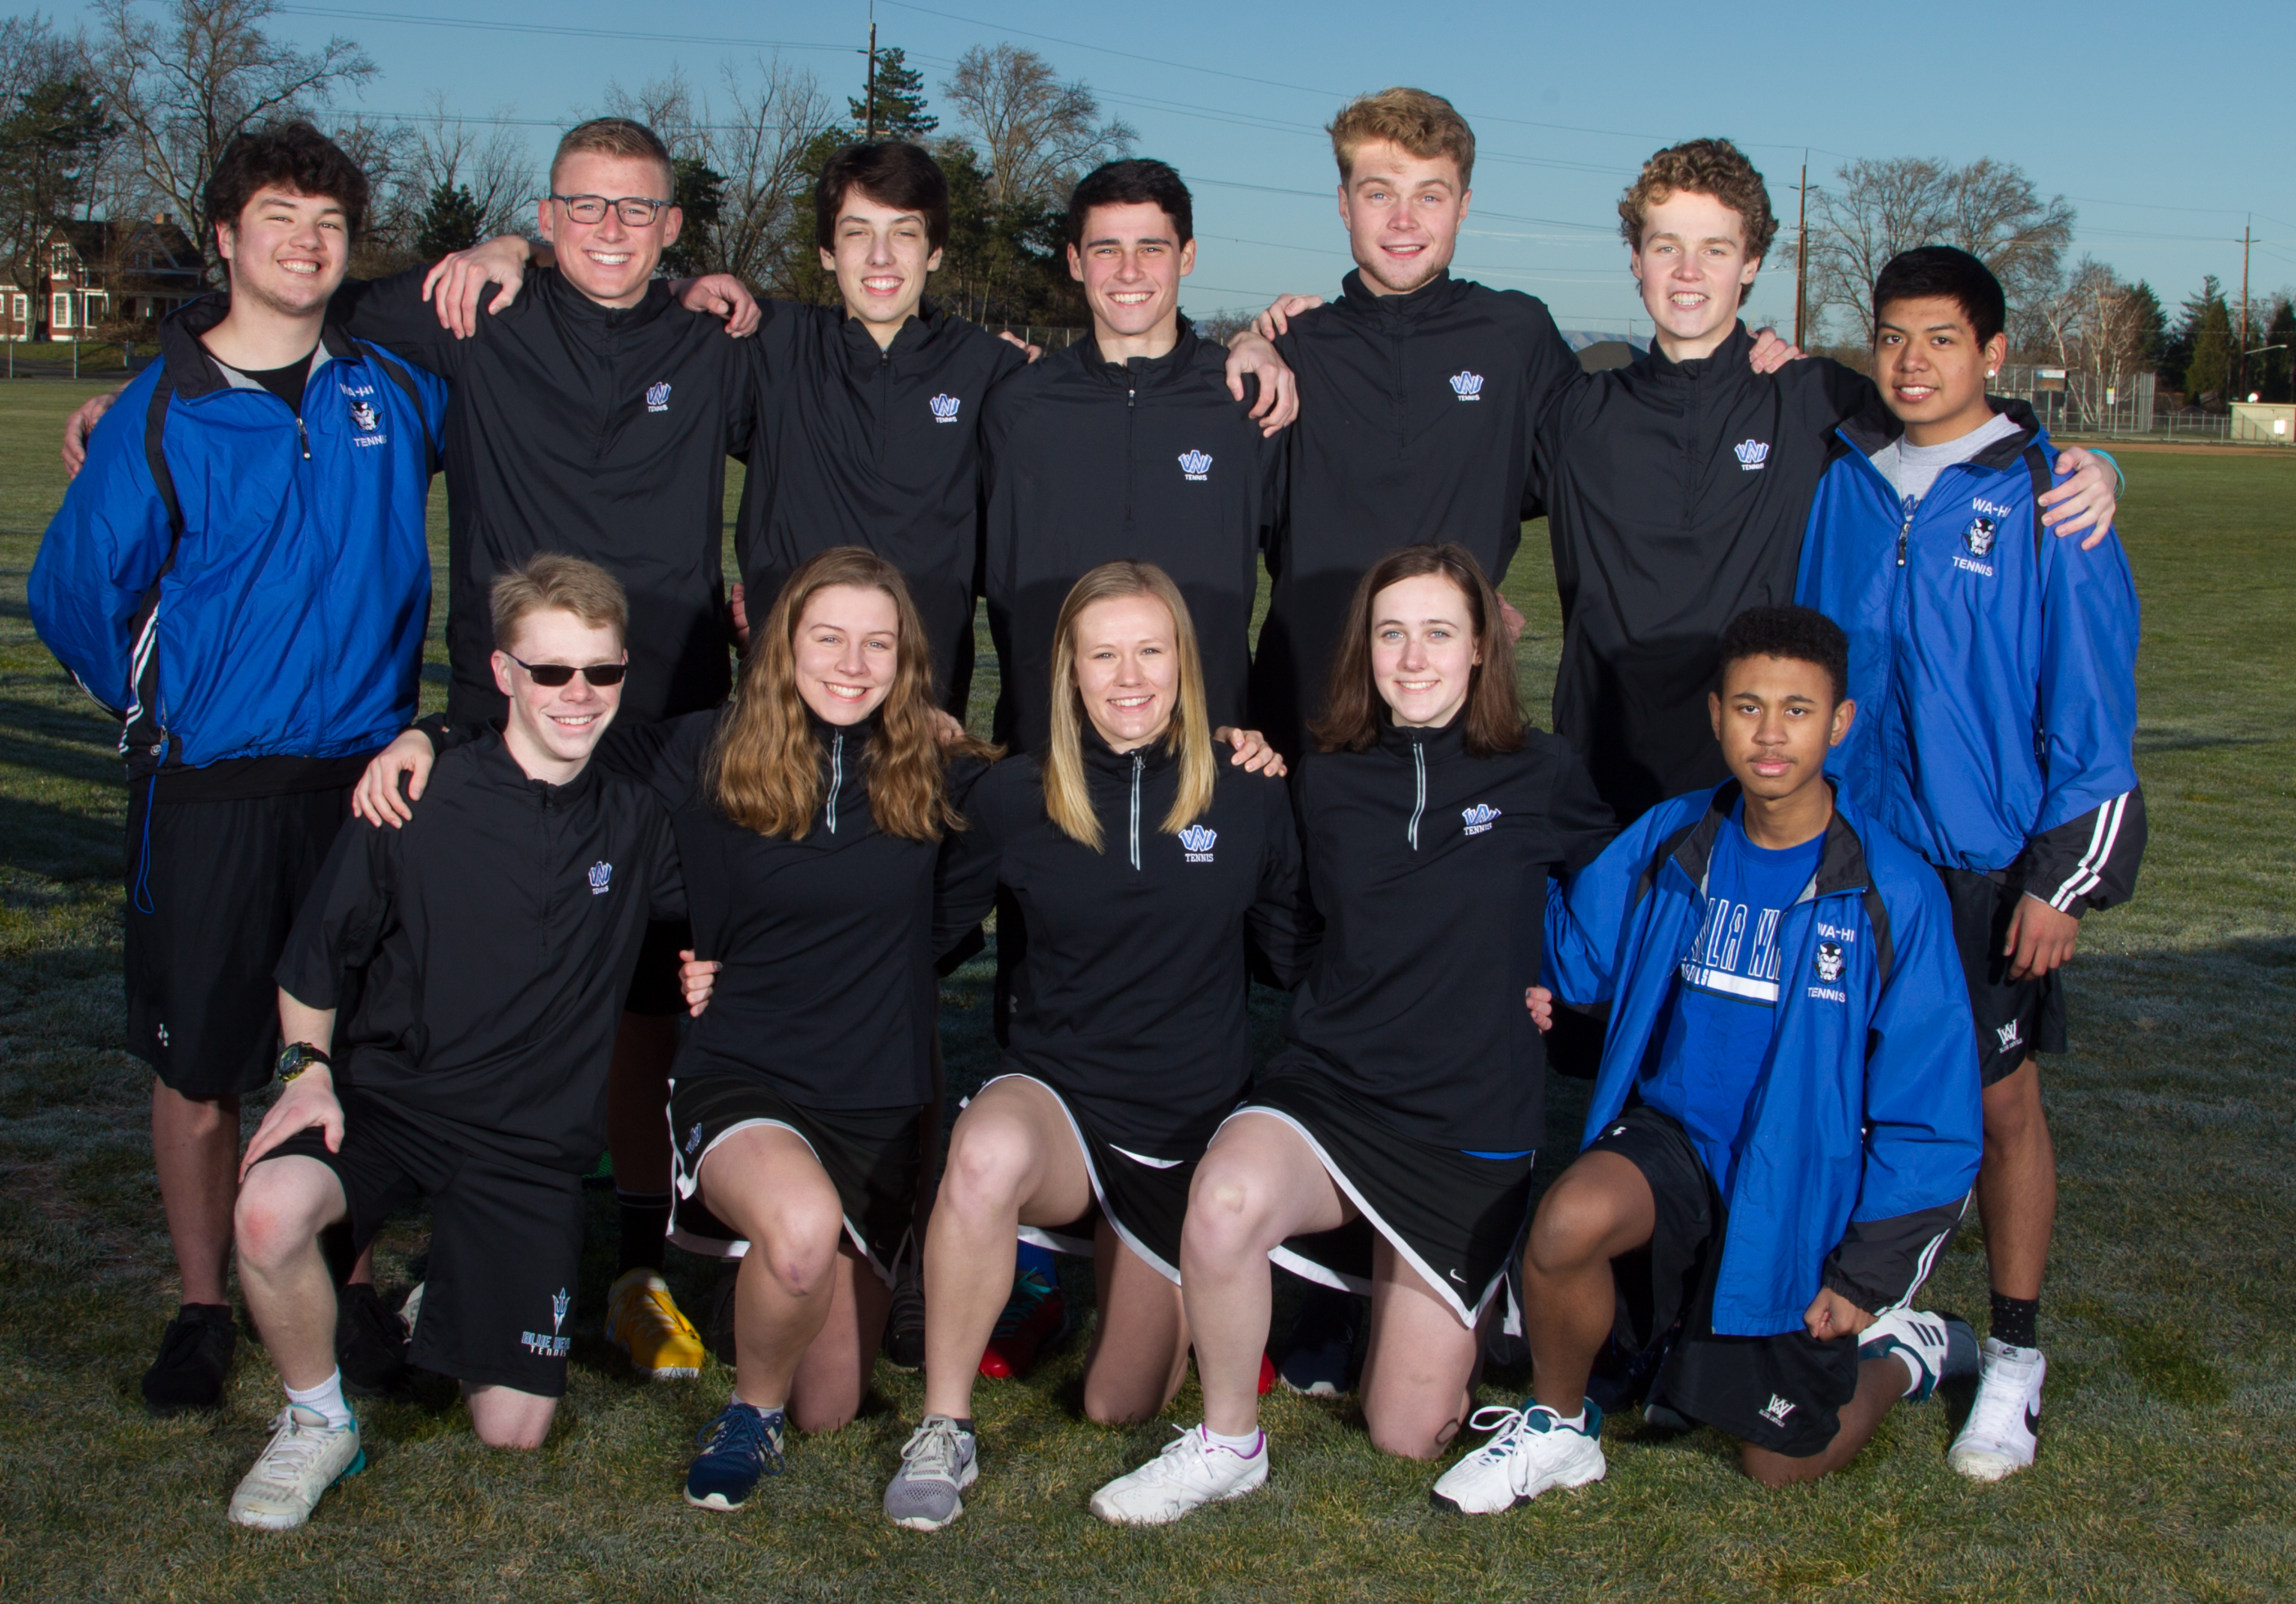 images/athletics/Tennis/2018_Tennis_Seniors.jpg